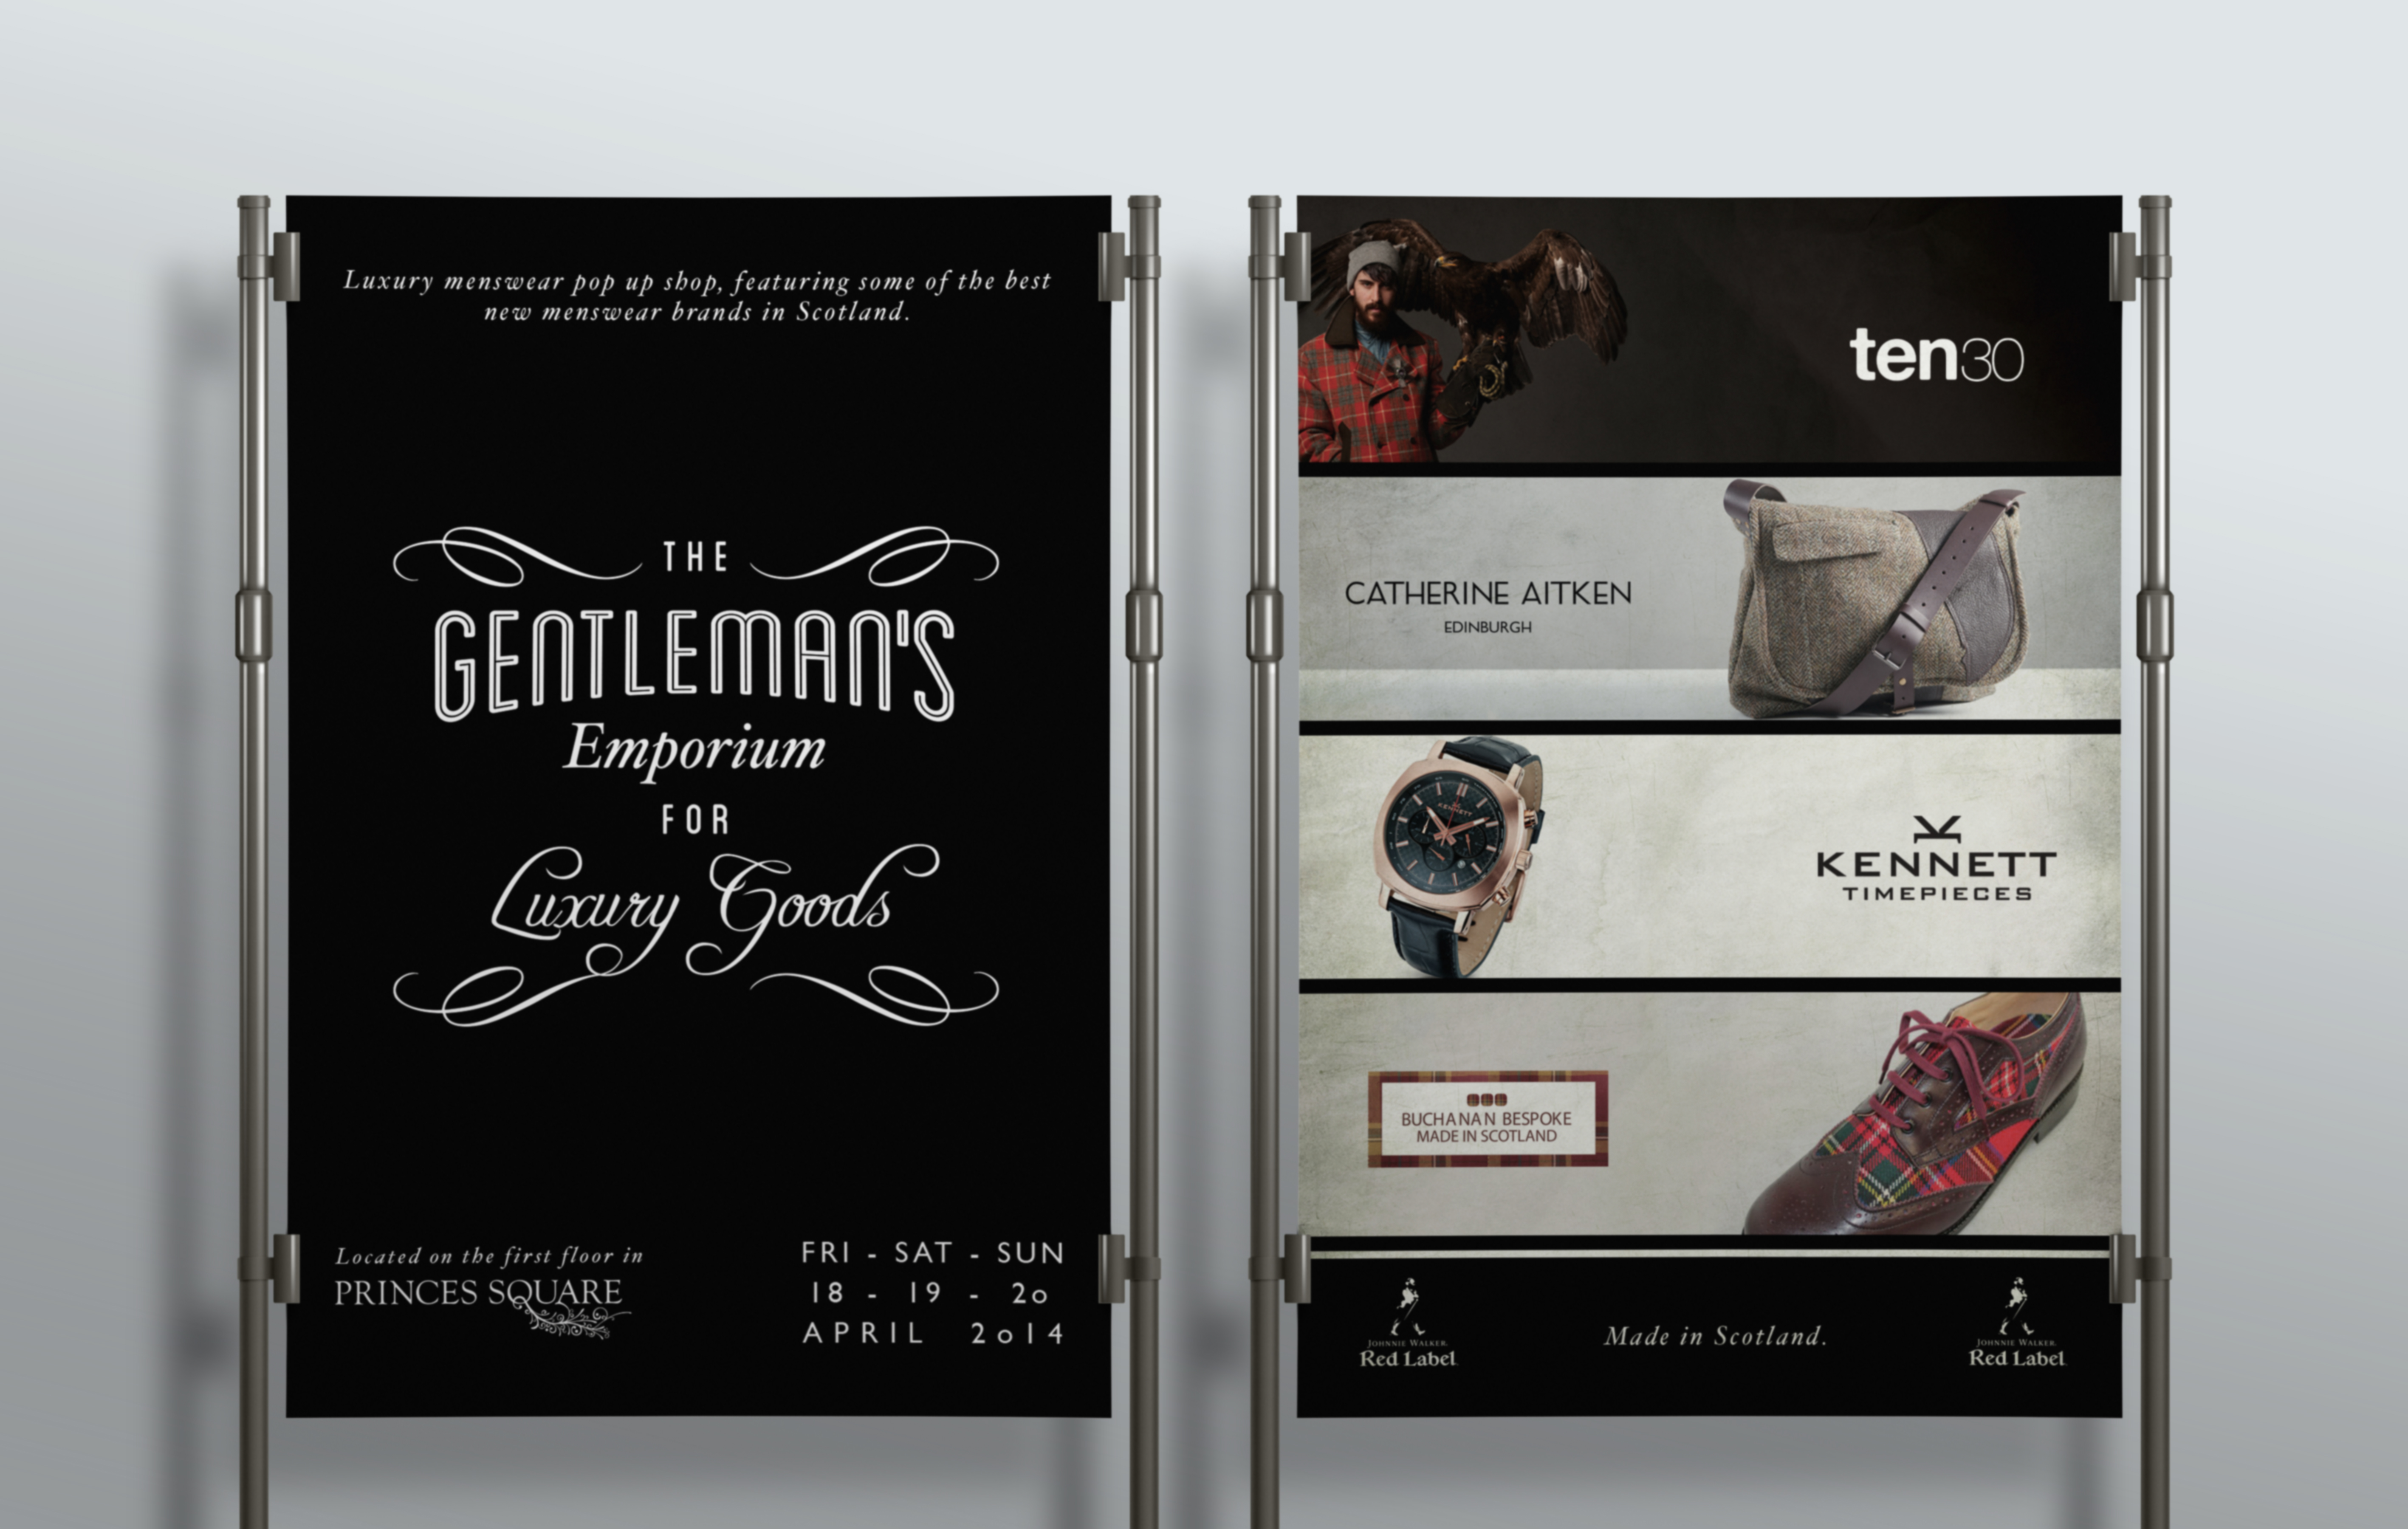 The Gentleman's Emporium For Luxury Goods